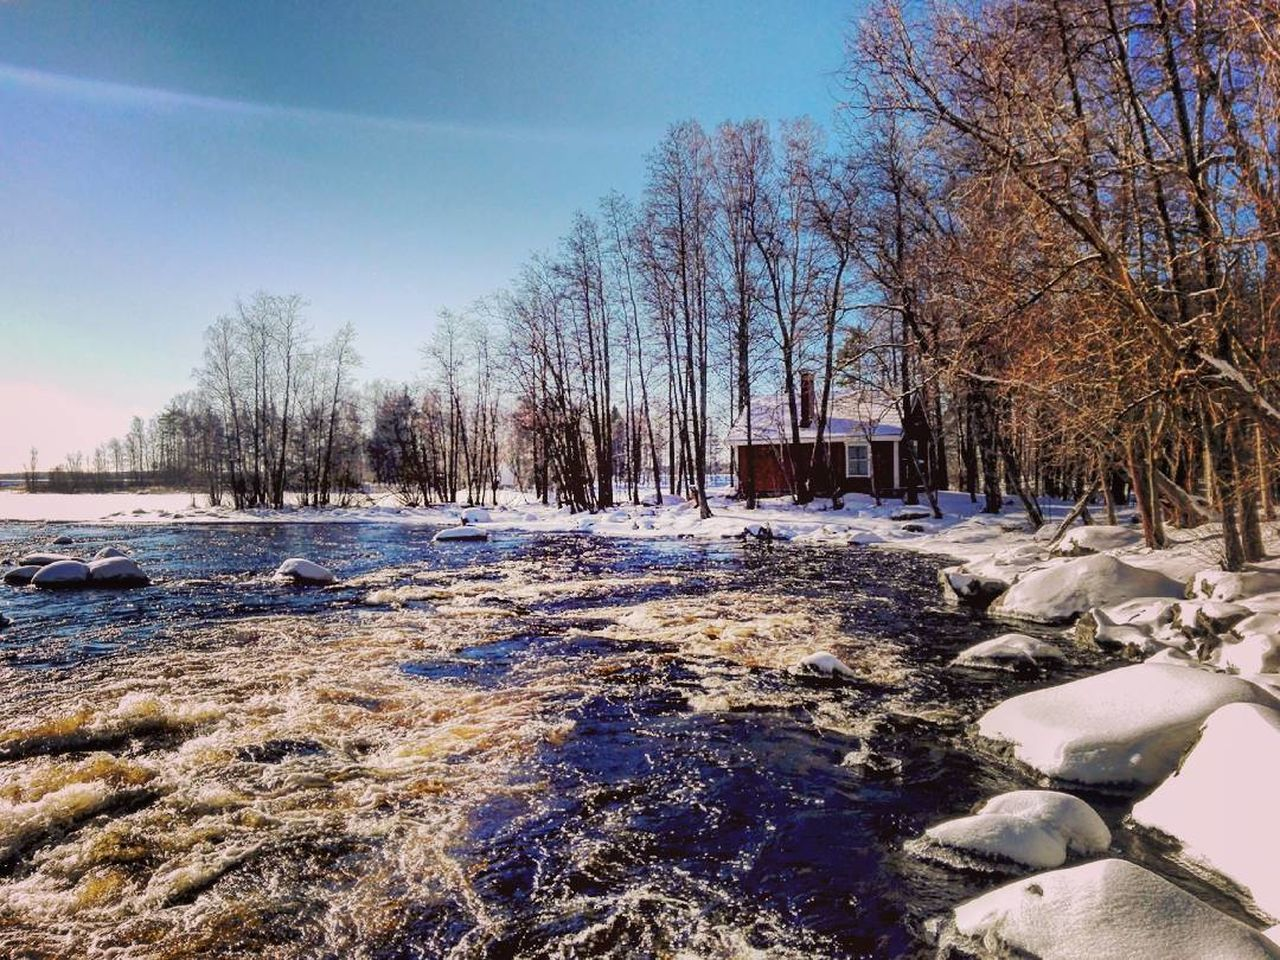 River Snow Winter Outdoors Photographer Naturebeauty Sunlight Photography Naturelovers Colourful Flowing Water Nature Photography Landscape_photography Naturepath Finnish Nature Weather Water Snow ❄ Wintertime Winter Landscape Daytime